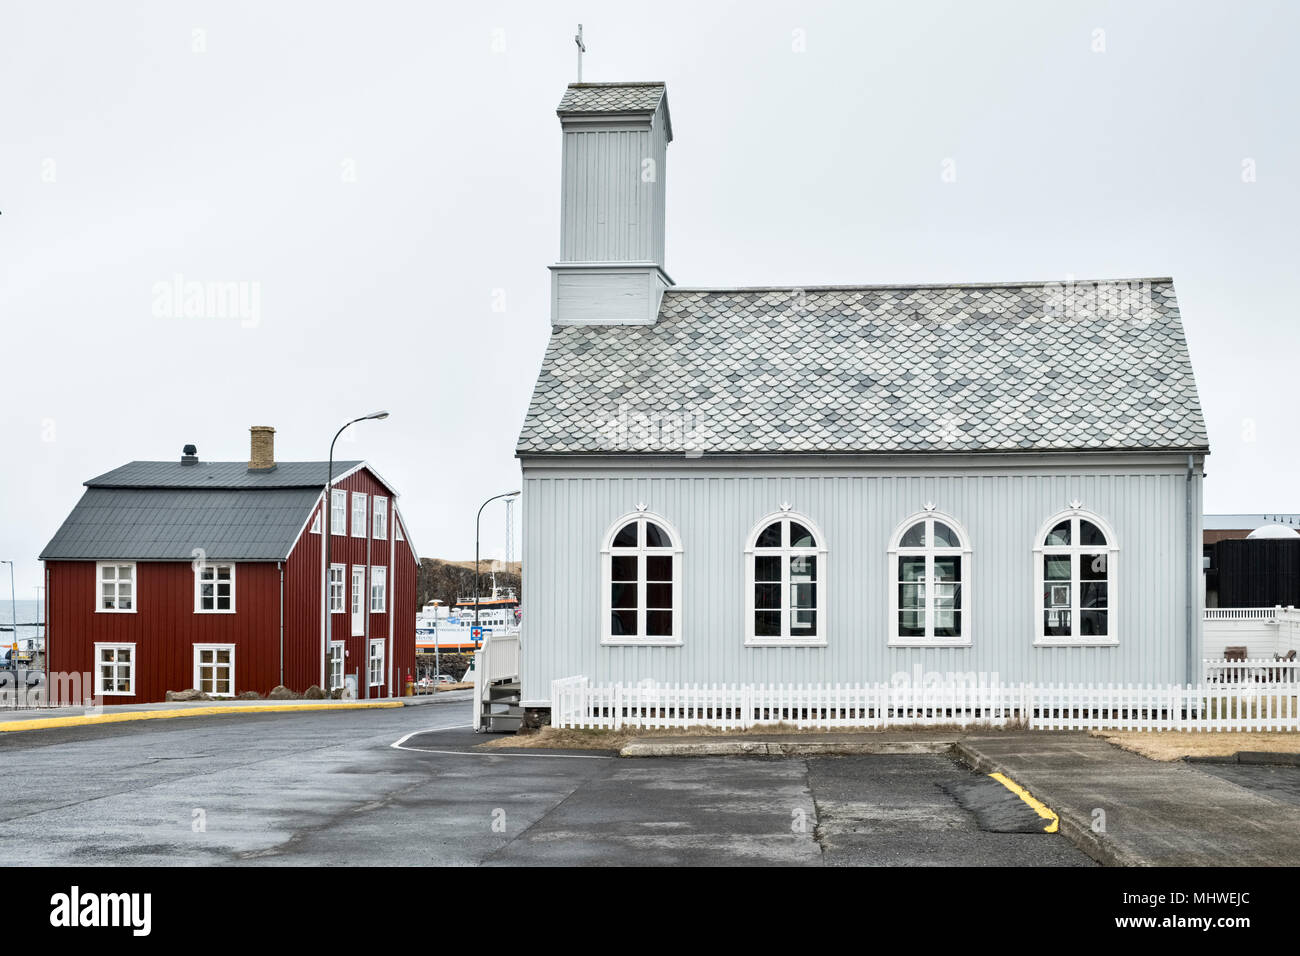 West Iceland - the picturesque town of Stykkishólmur on the Snæfellsnes peninsula. The old wooden church, built in 1879 - Stock Image